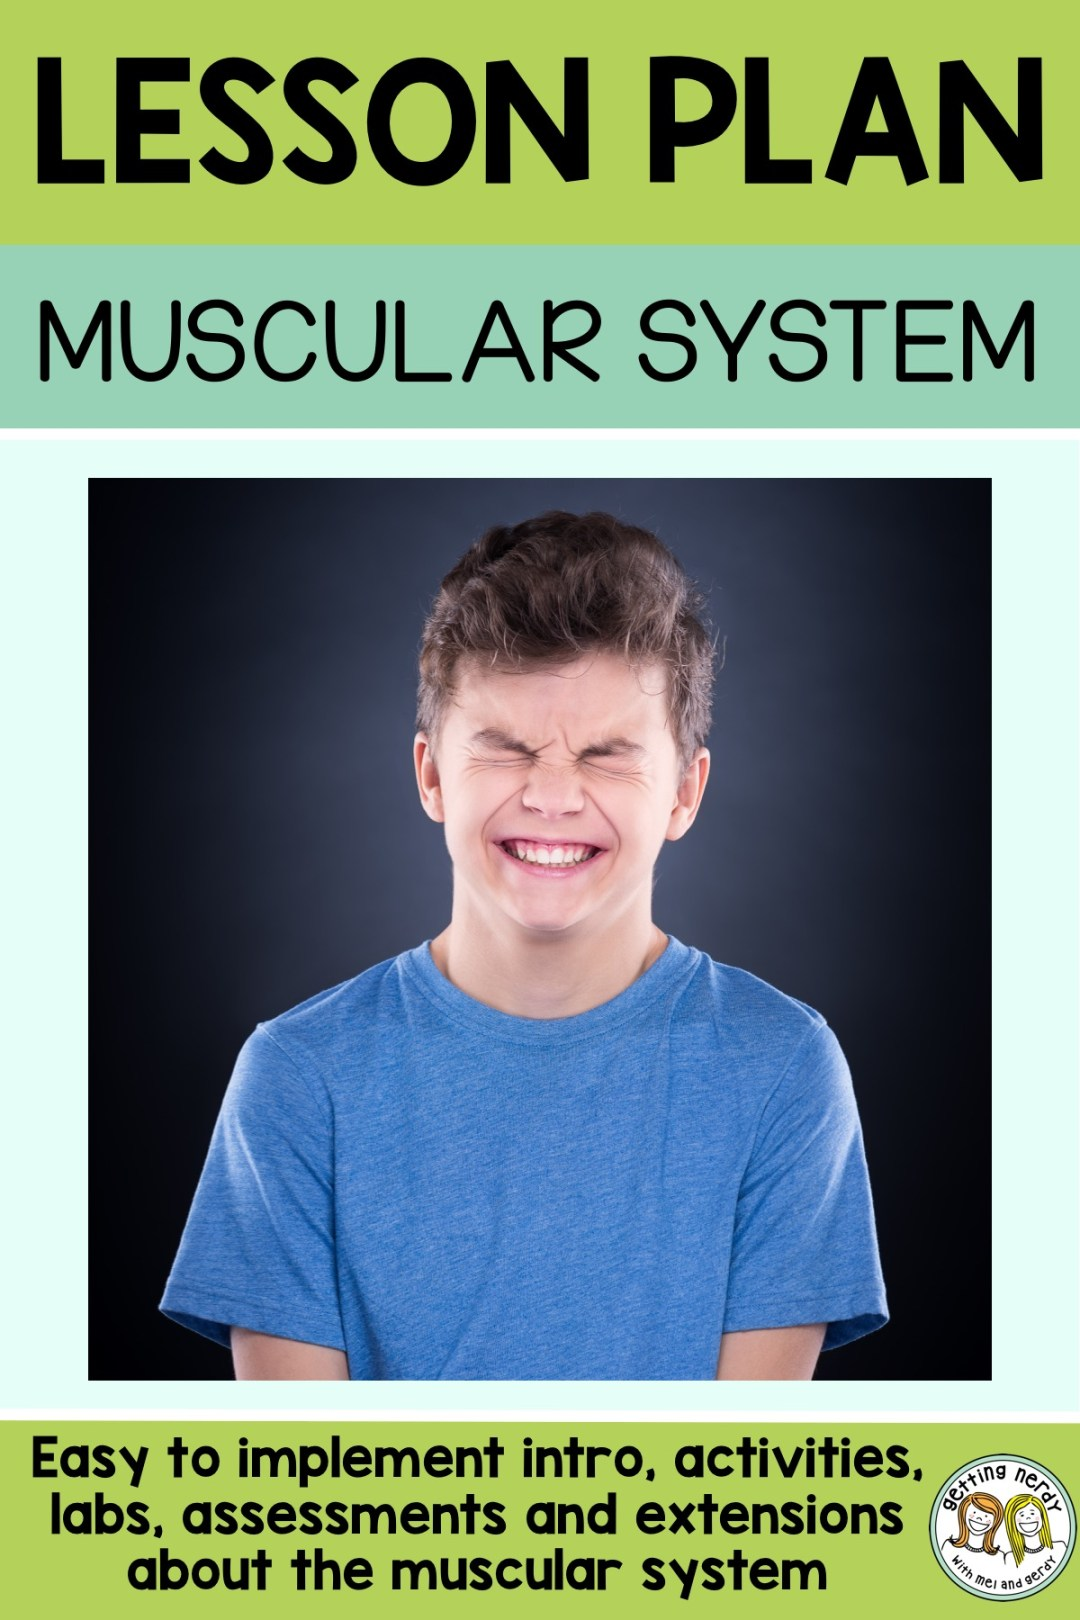 This a great lesson and lab for teaching about voluntary and involuntary muscle movement #gettingnerdyscience #sciencelessonplan #muscularsystem